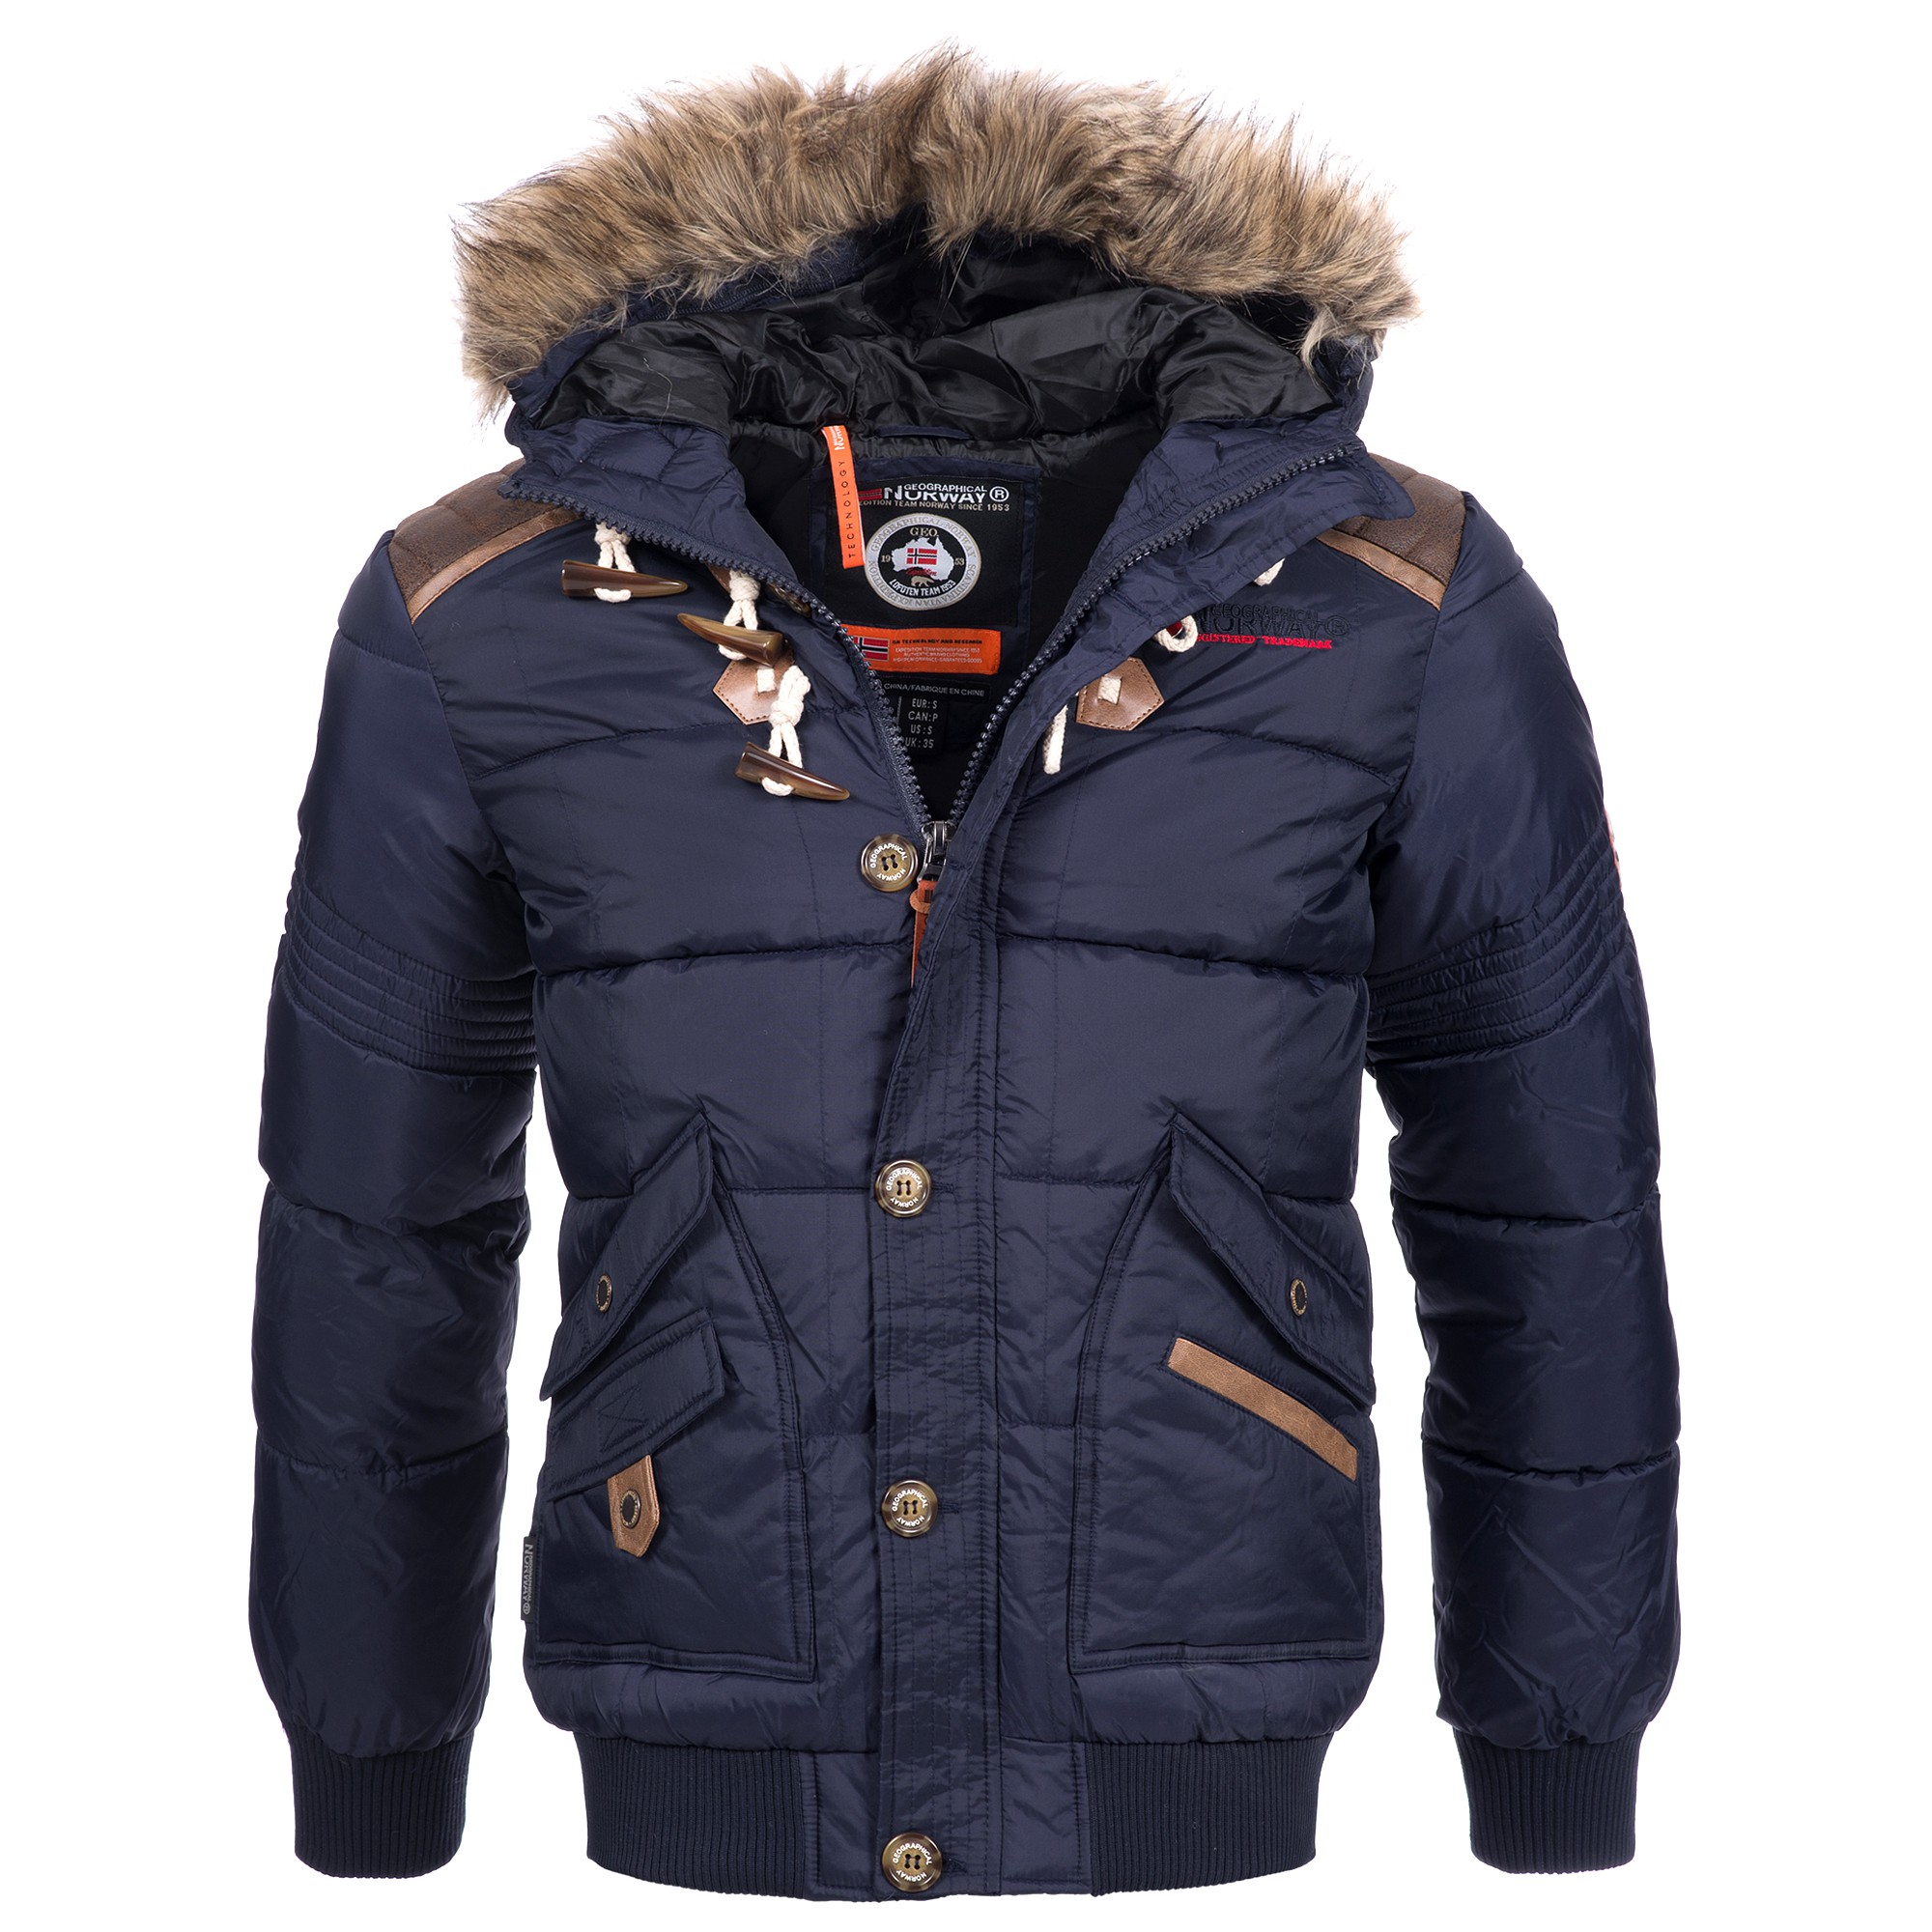 geographical norway belphegore herren winterjacke jacke. Black Bedroom Furniture Sets. Home Design Ideas